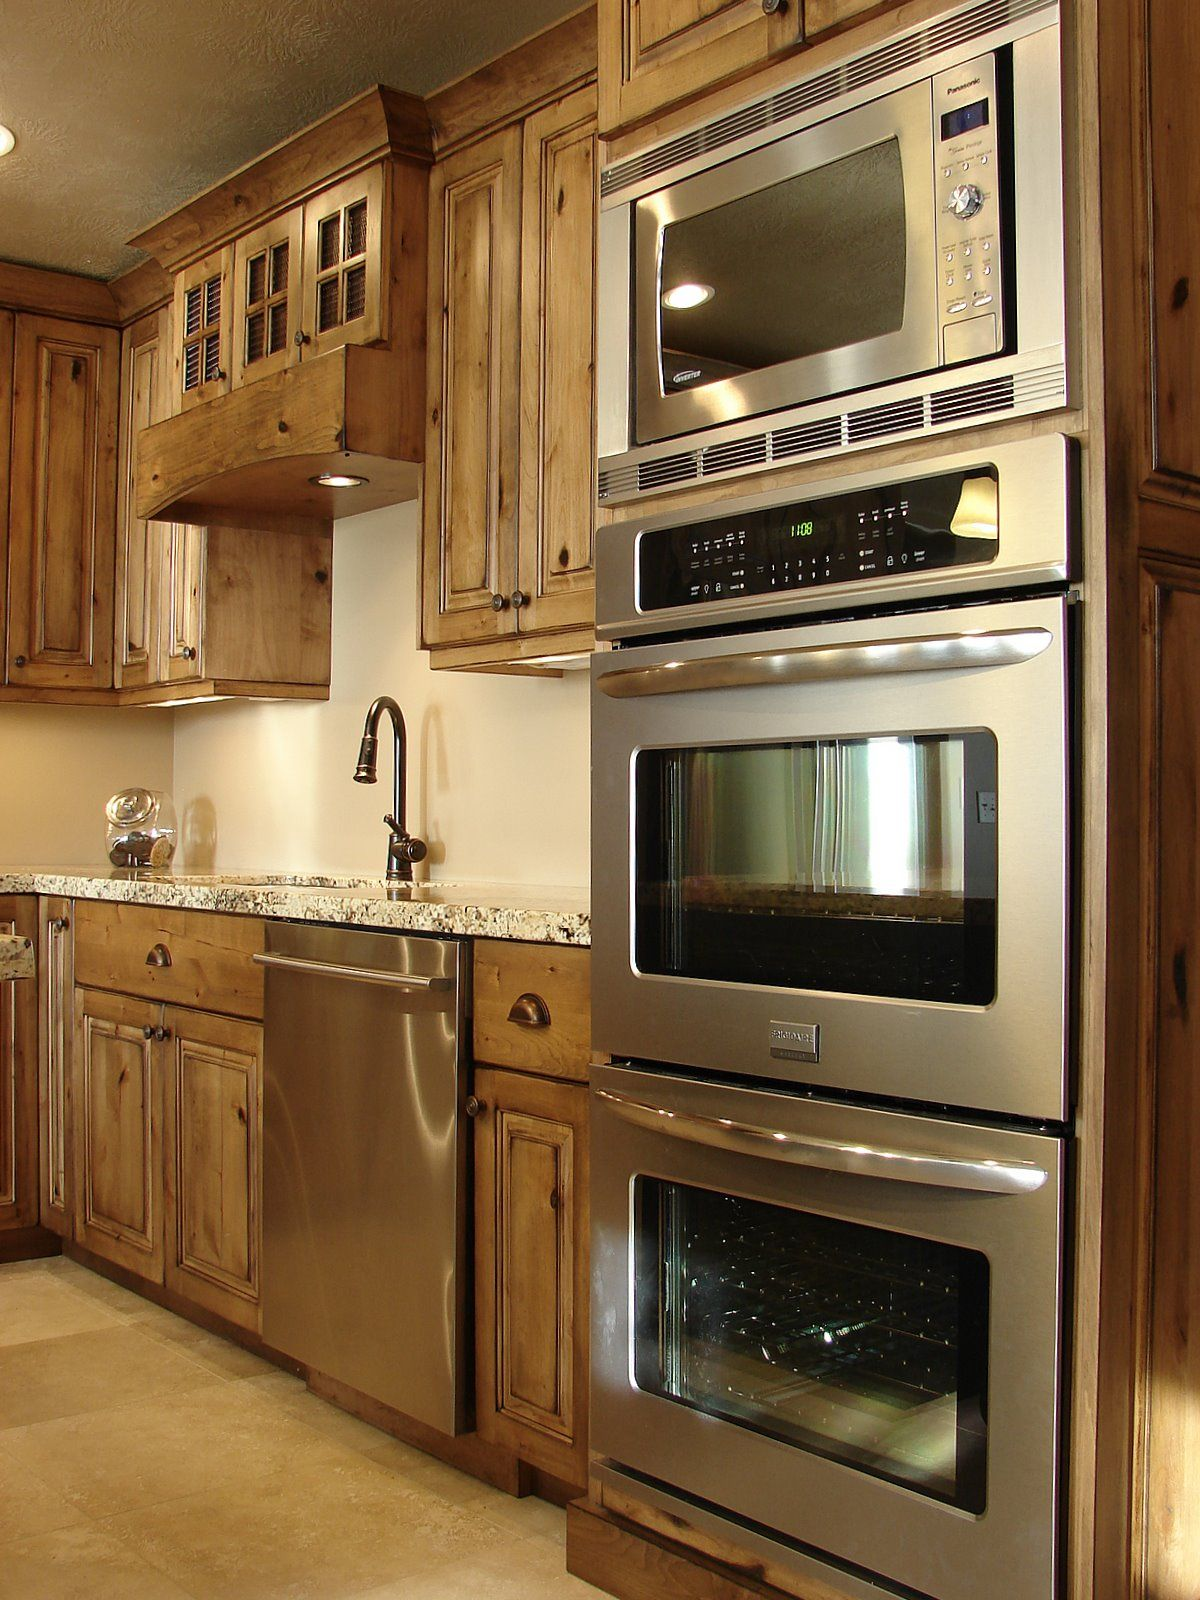 Double oven and microwave and alder kitchen cabinets for Double kitchen cabinets